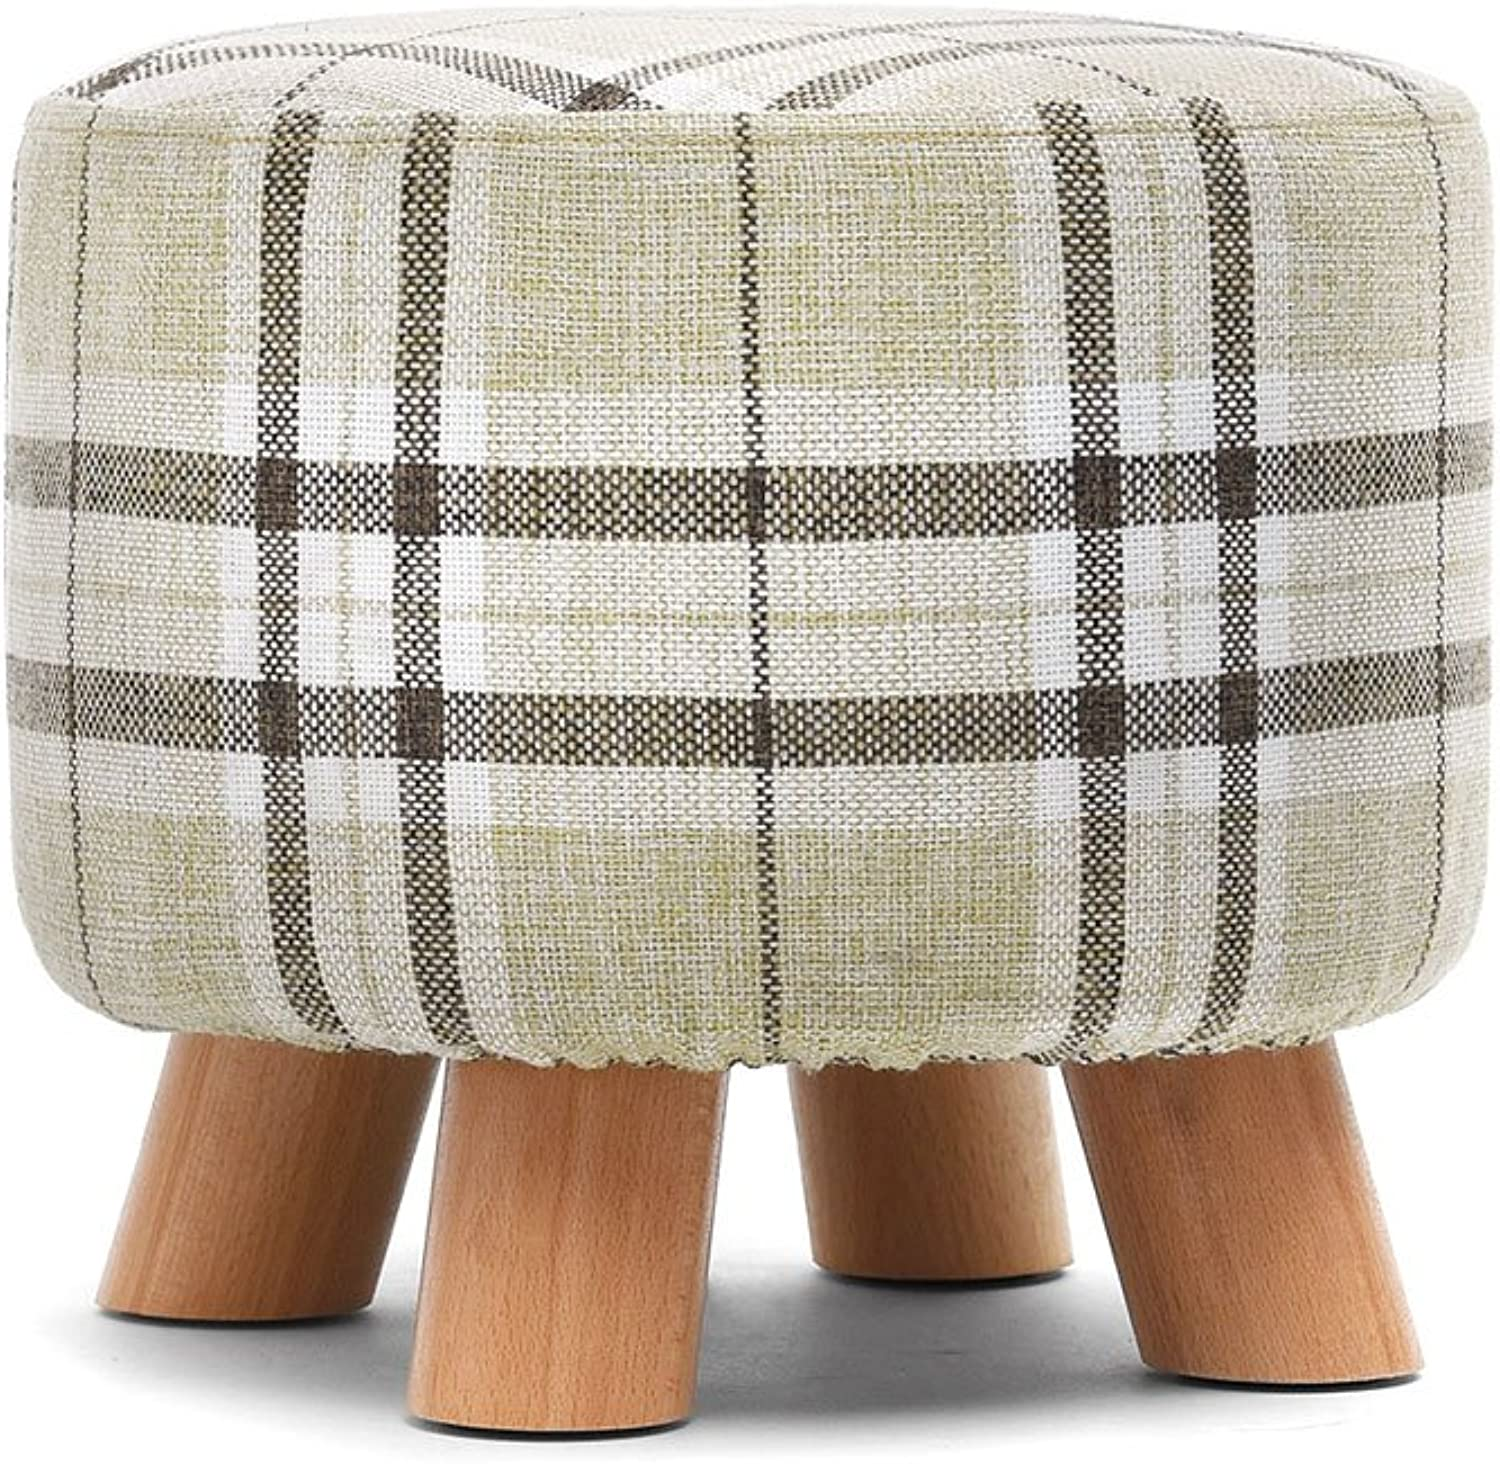 DDSS Household shoes Bench Living Room Coffee Table Stool Fabric Sofa Stool Solid Wood Low Stool Round Adult Bench Fashion Creativity Pure color Lattice Living Room Furniture (color   C)